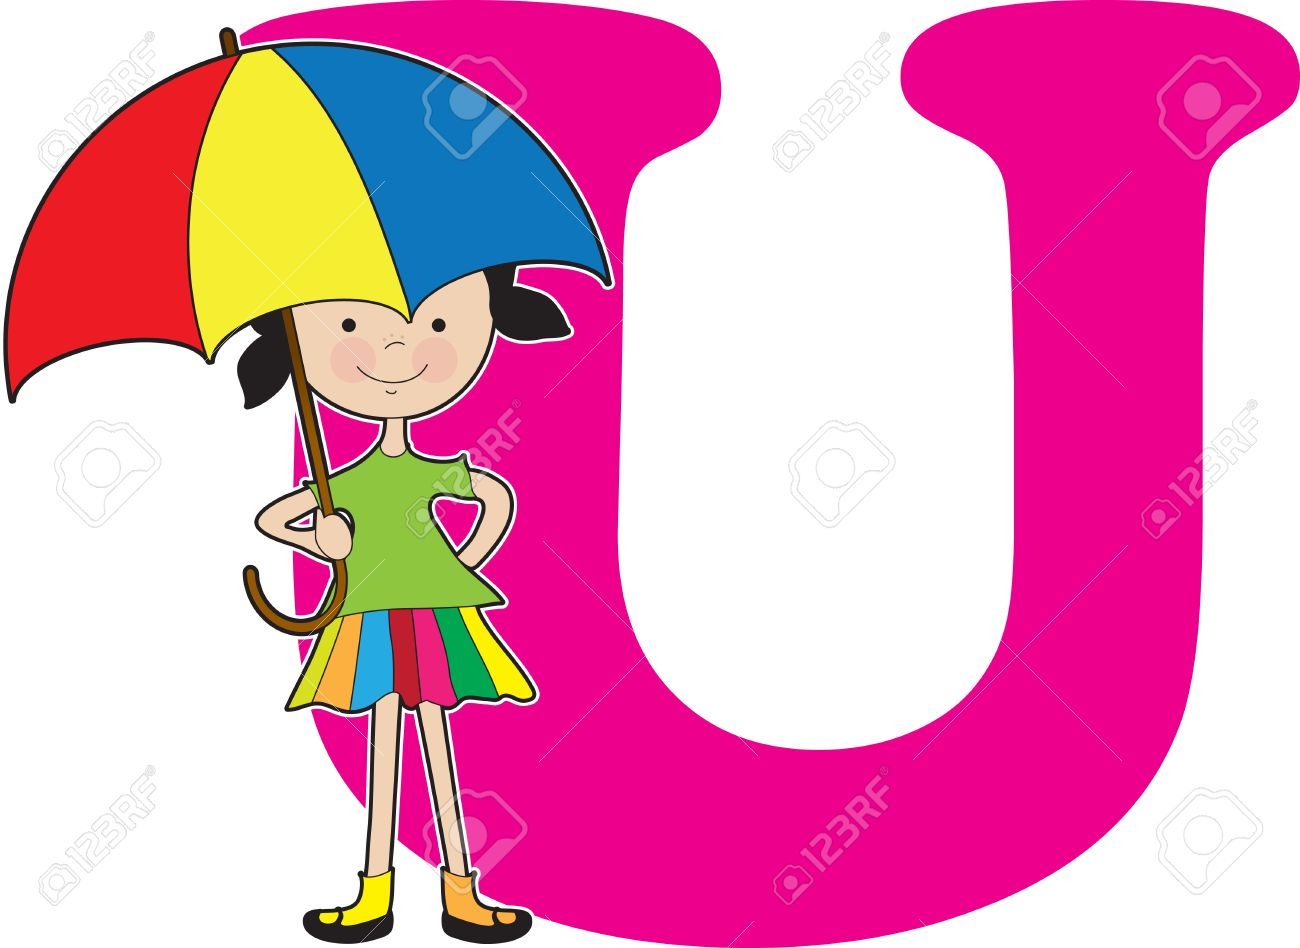 a young girl holding an umbrella to stand for the letter u royalty